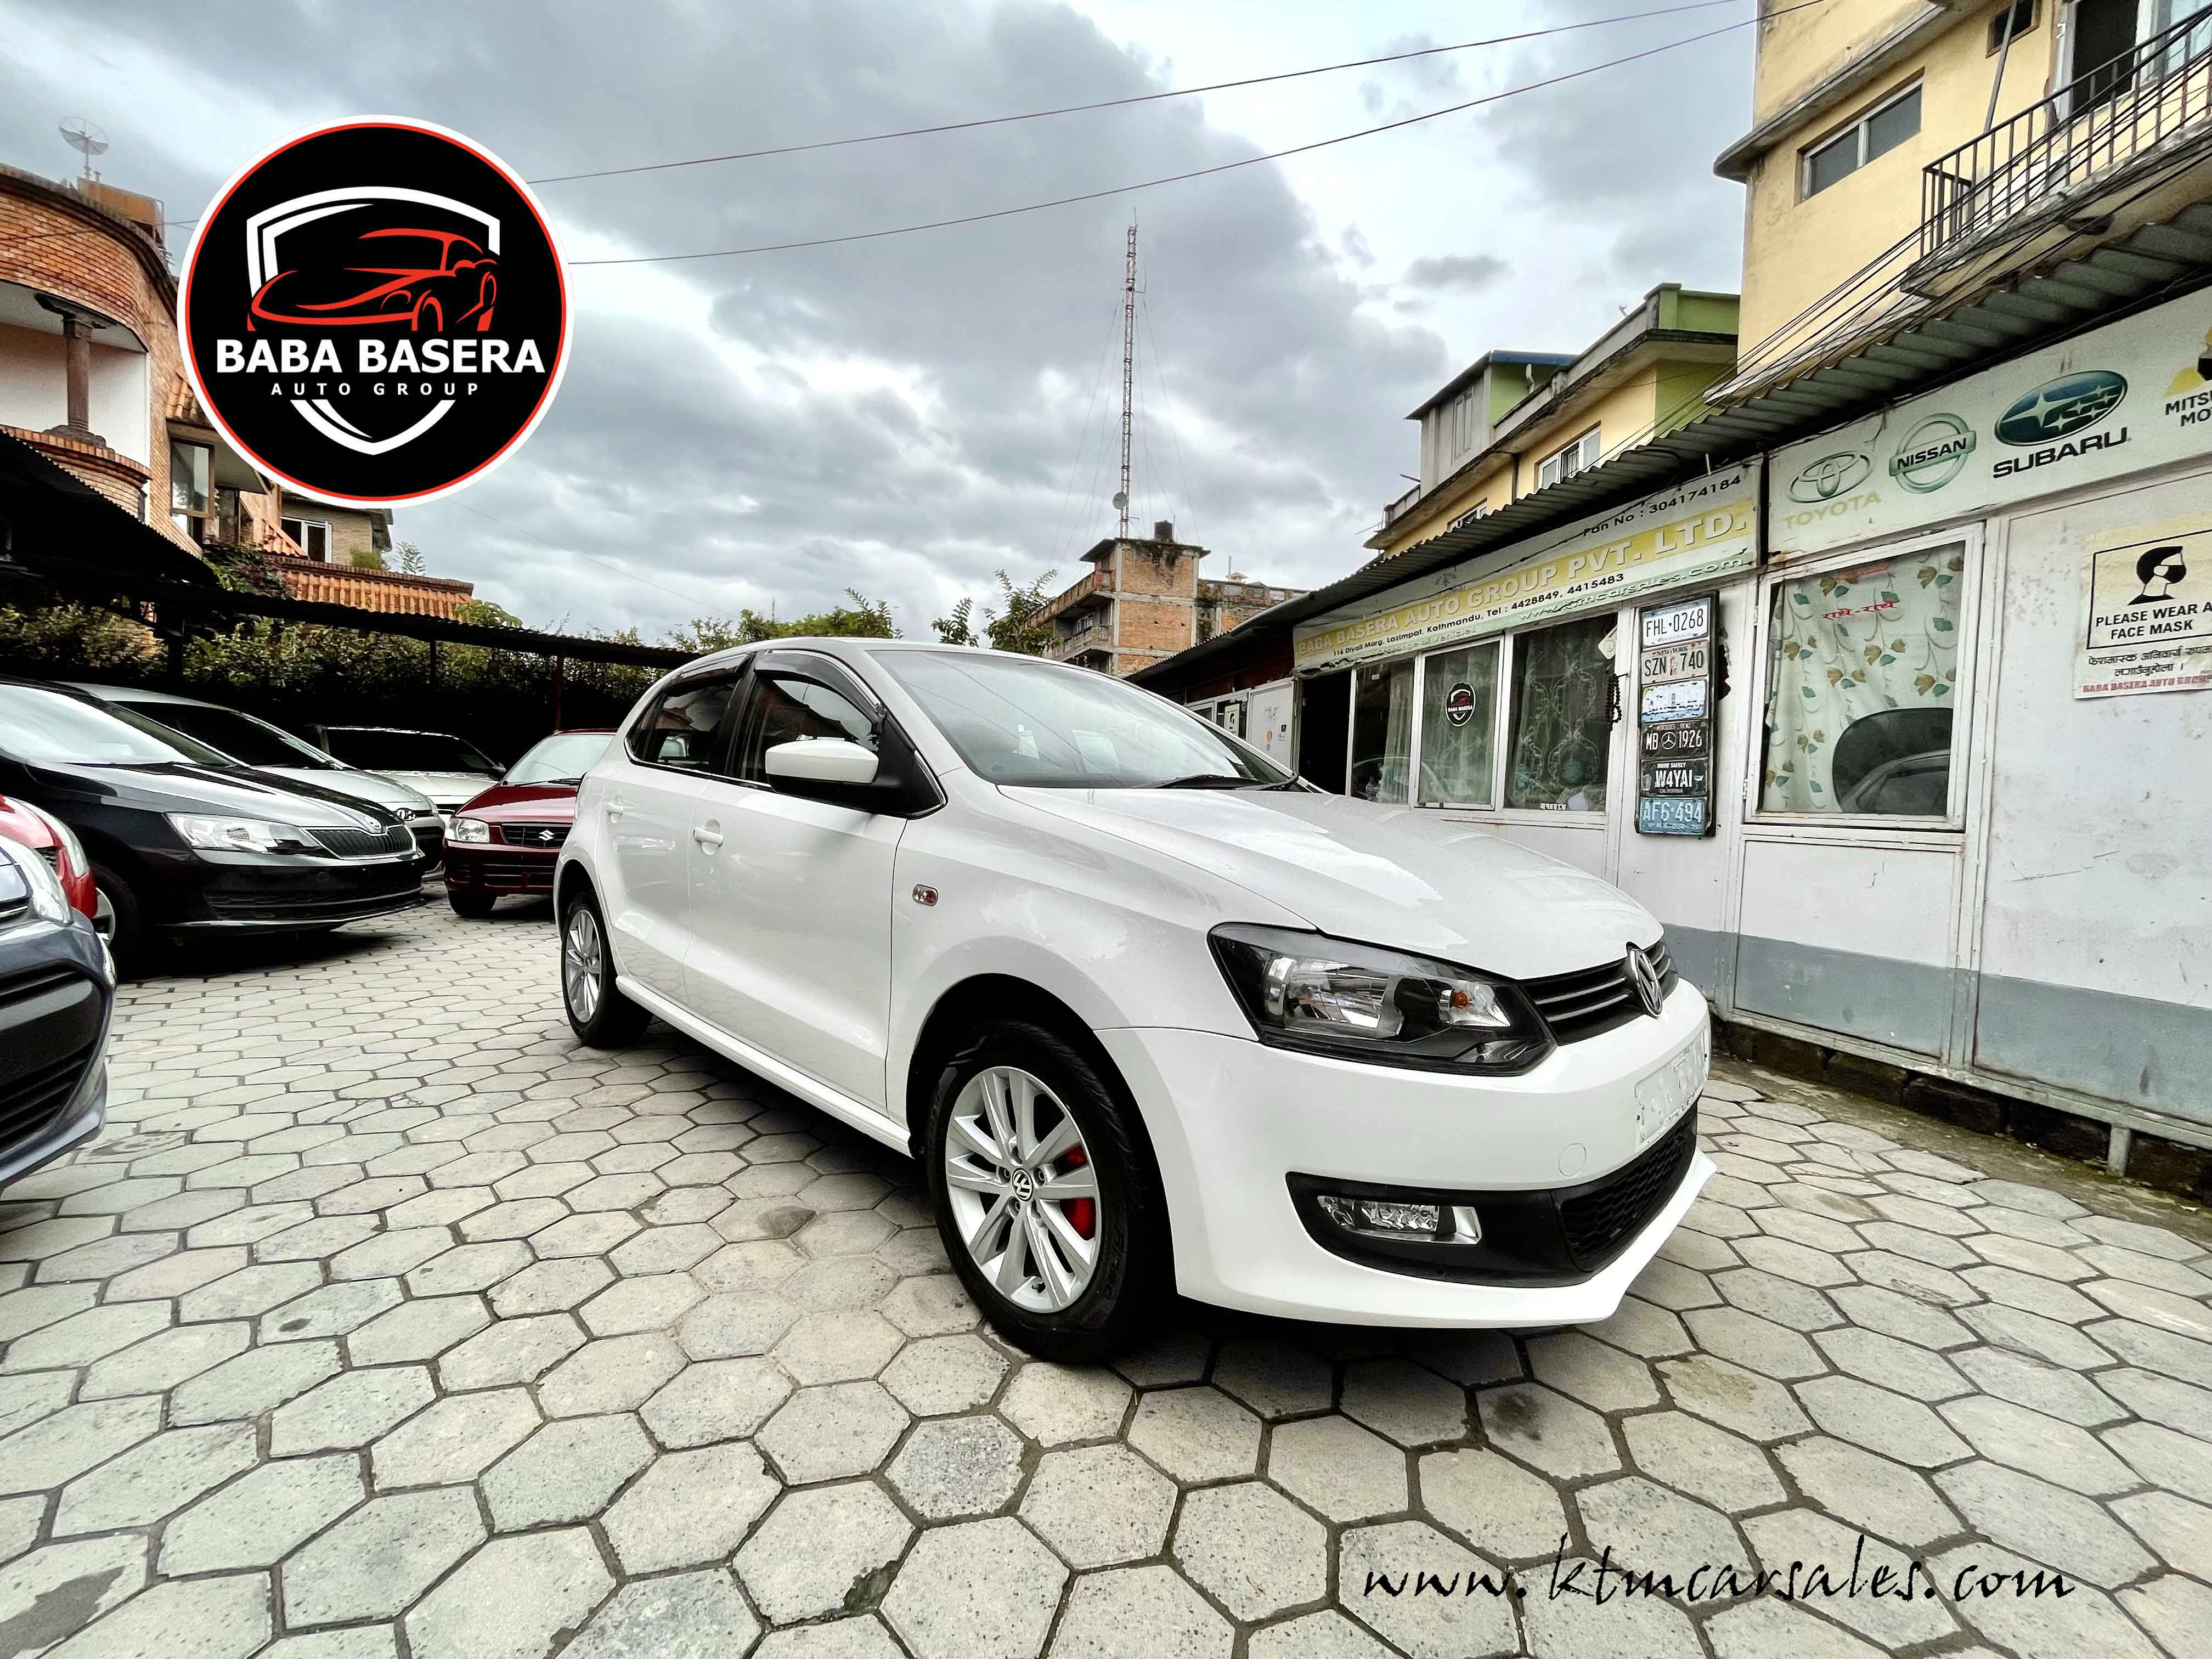 Single Owner Volkswagen POLO HighLine immaculate condition - Image 6